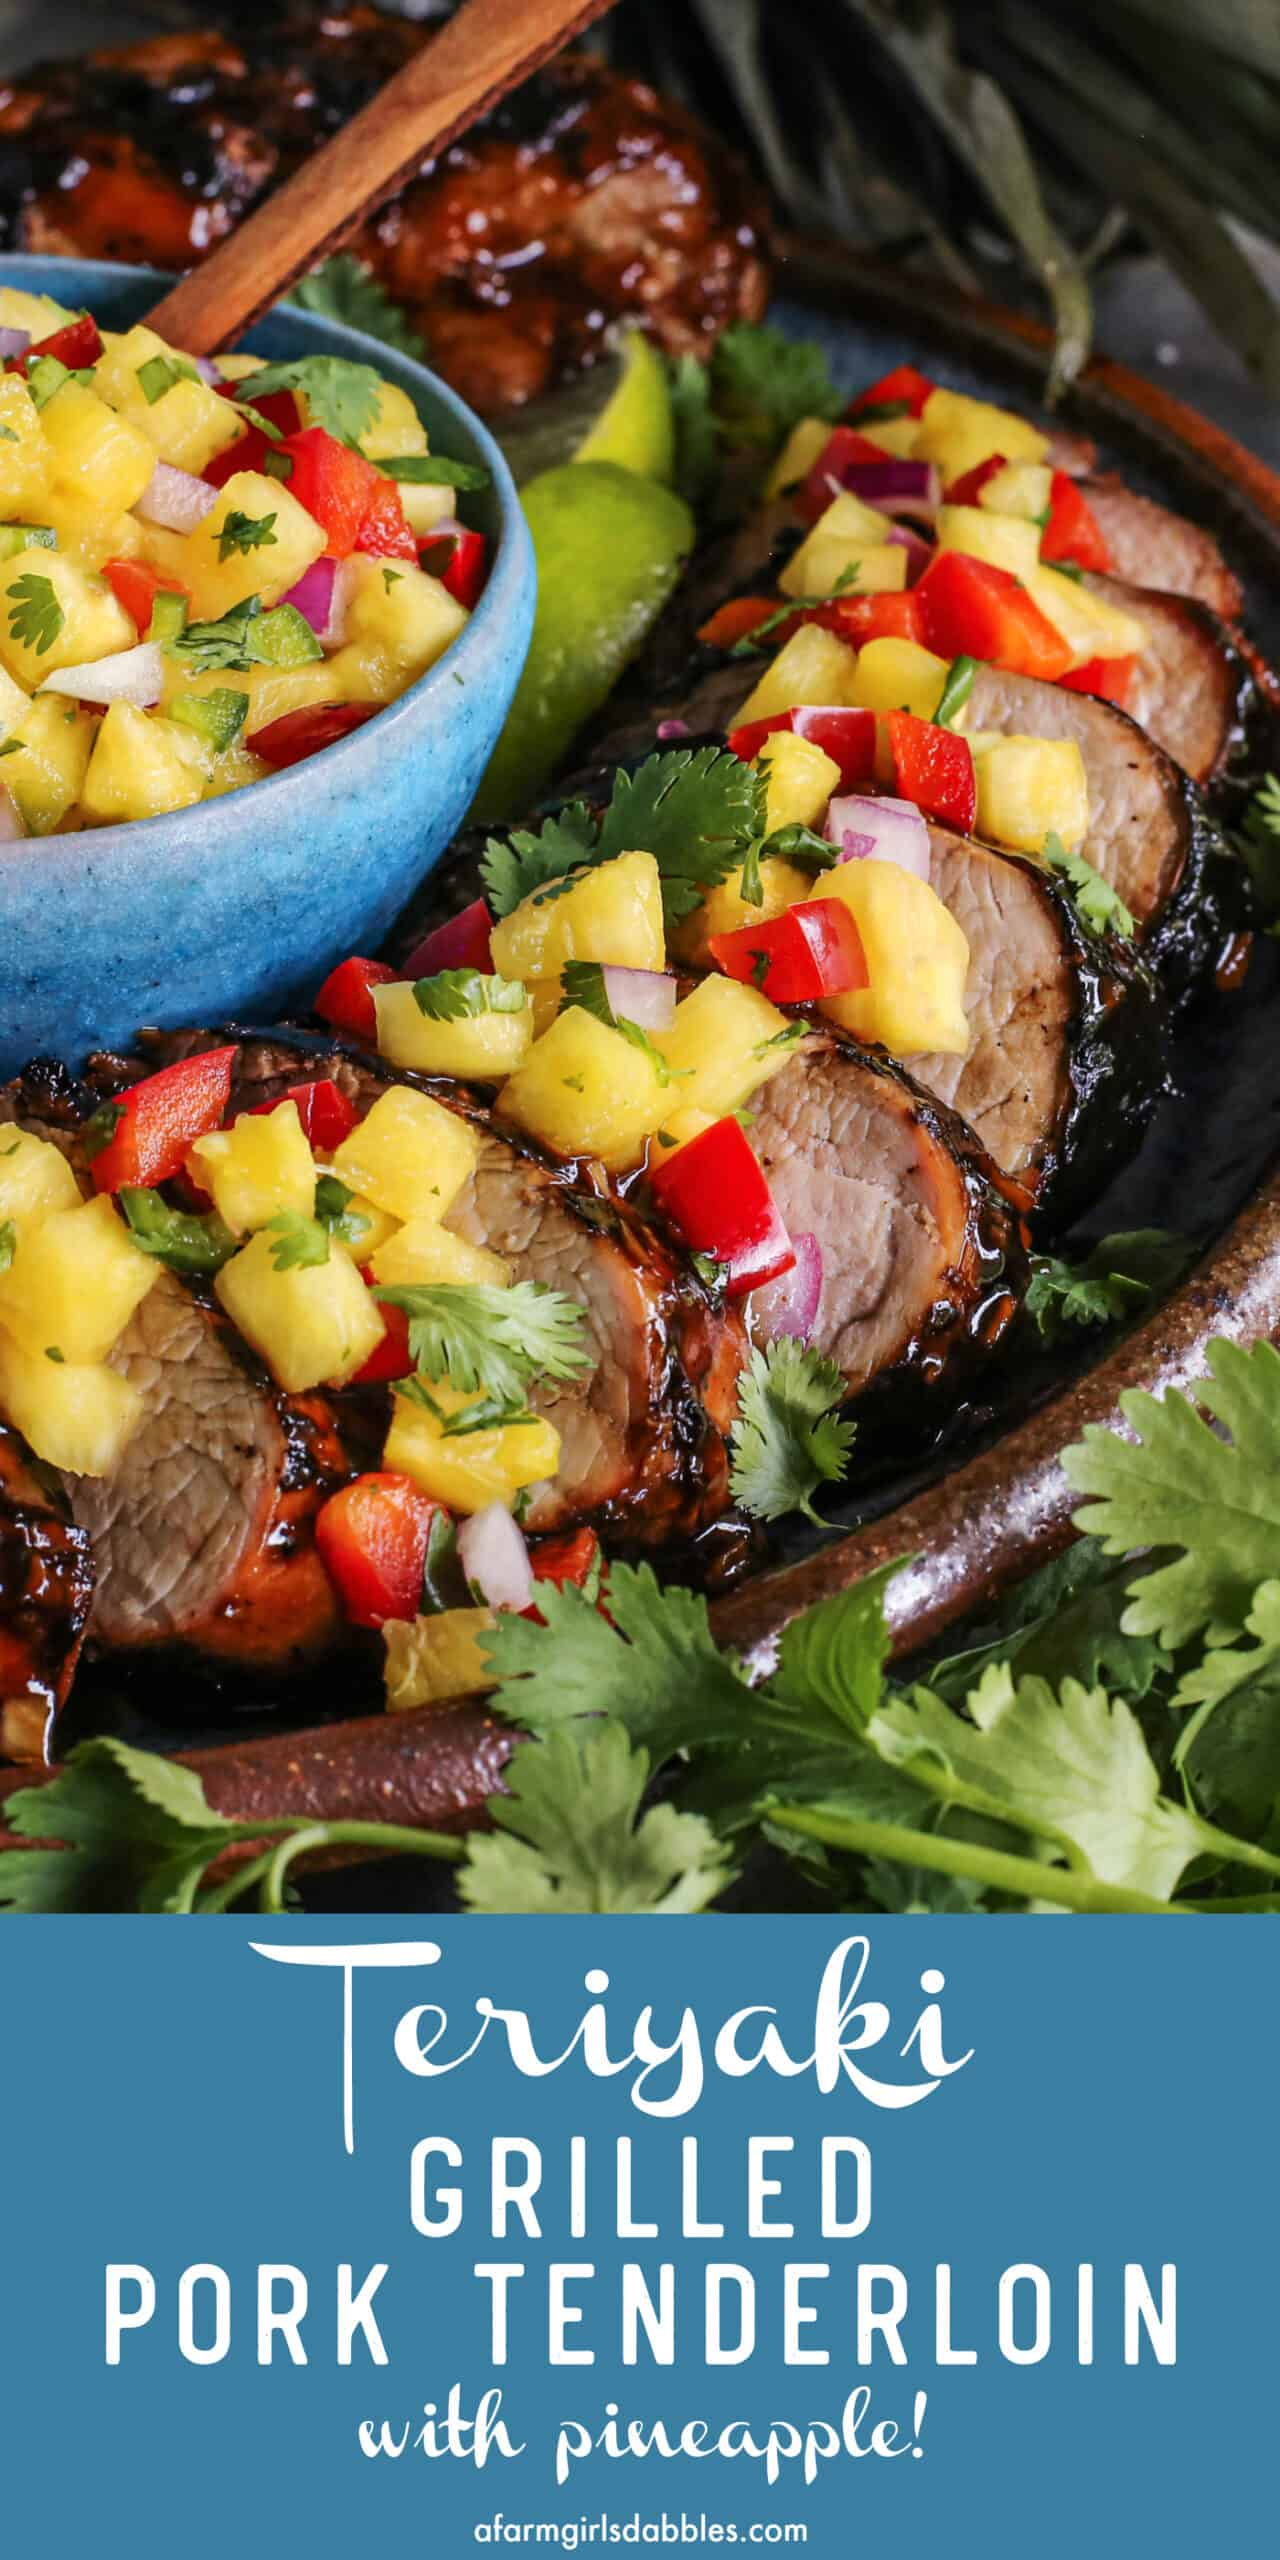 Pinterest image for teriyaki grilled pork tenderloin